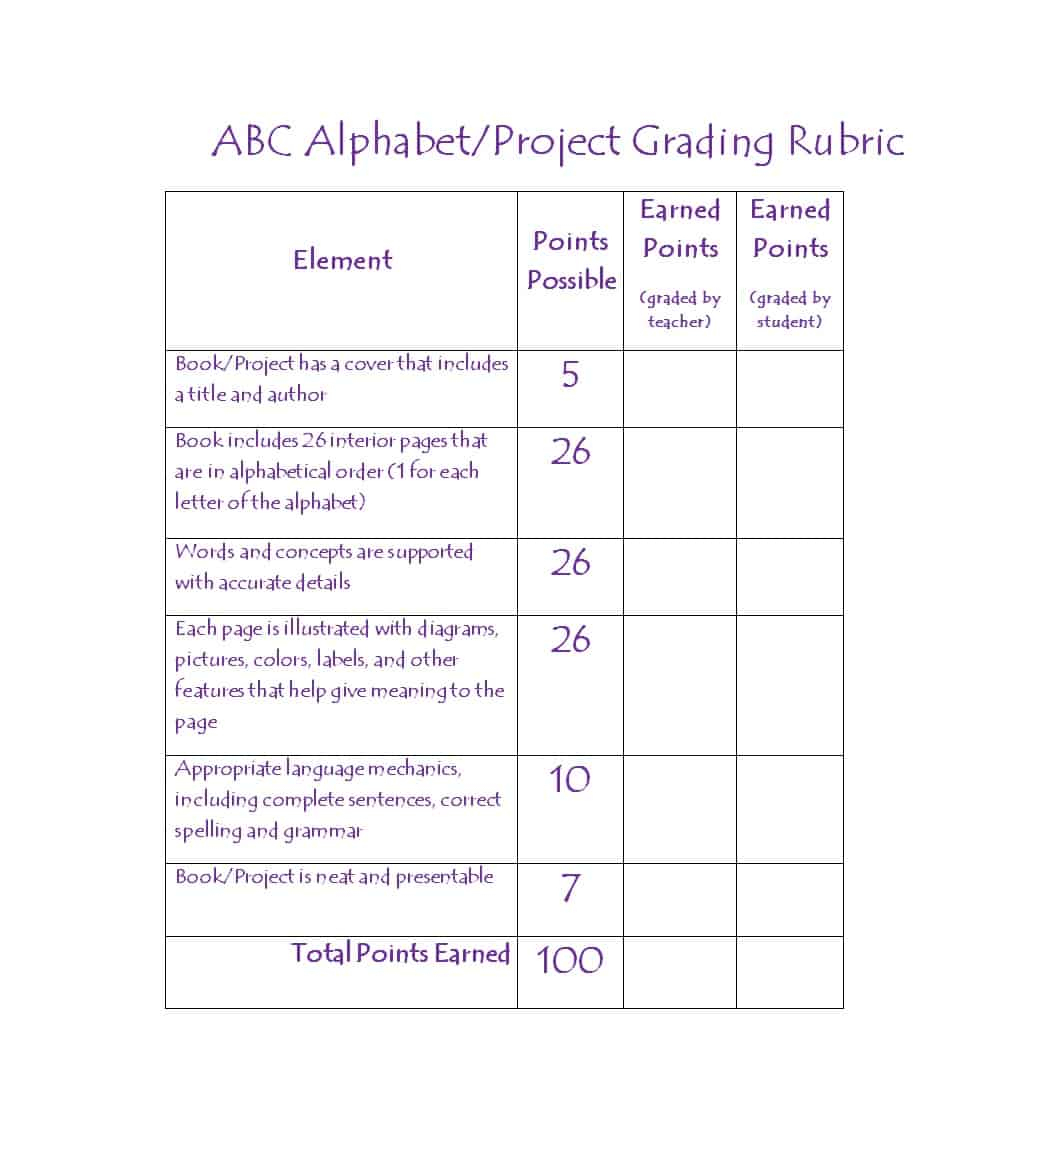 46 Editable Rubric Templates (Word Format) - Template Lab - Free Printable Rubrics For Teachers